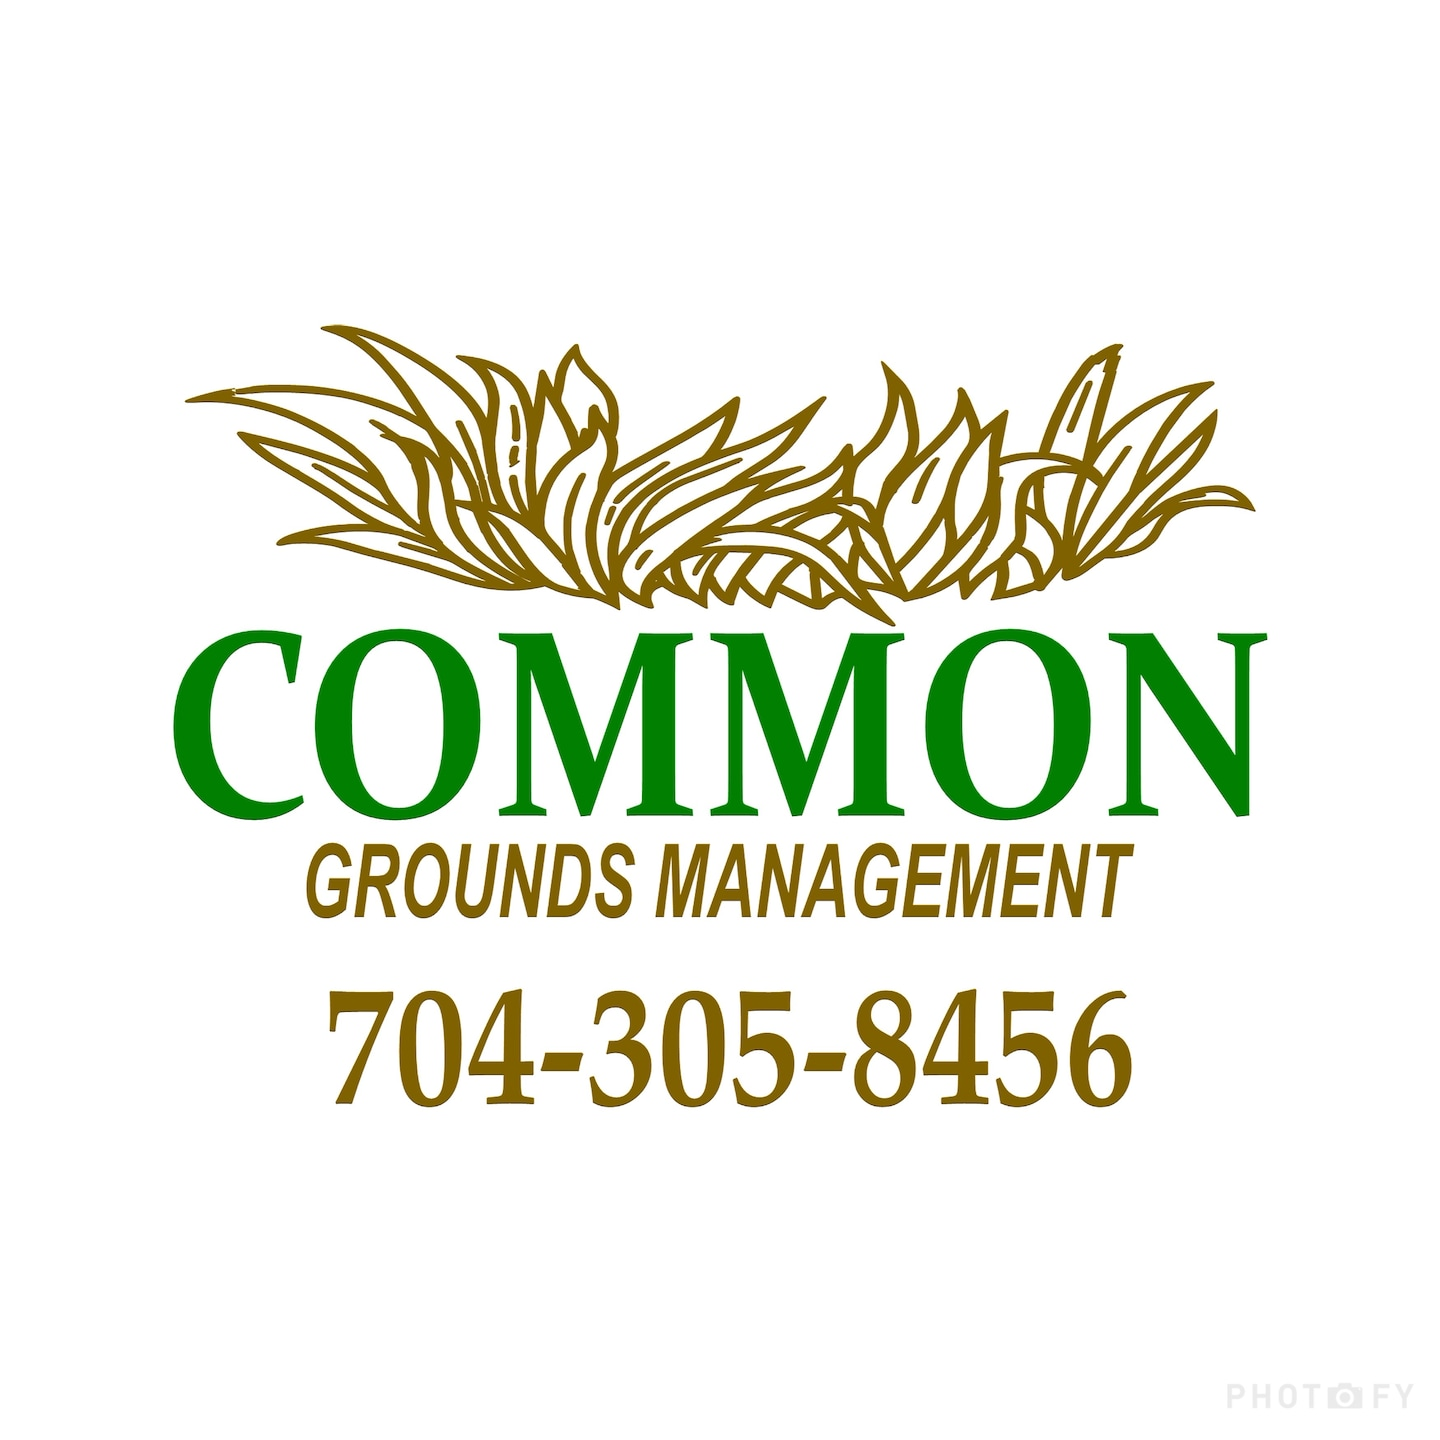 Common grounds management